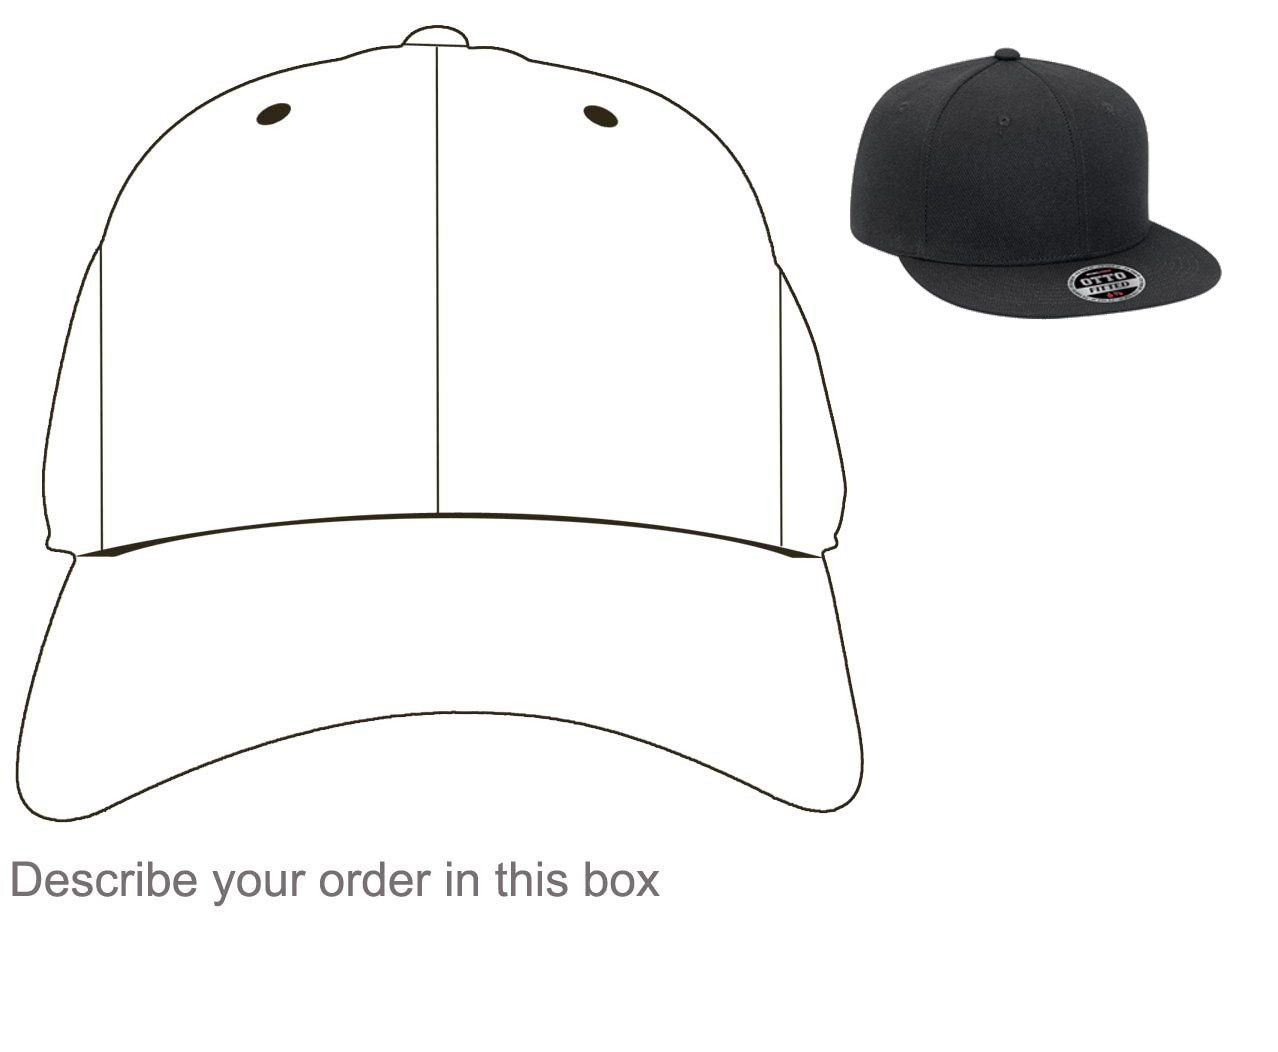 27 Images of Baseball Cap Hat Template | leseriail.com